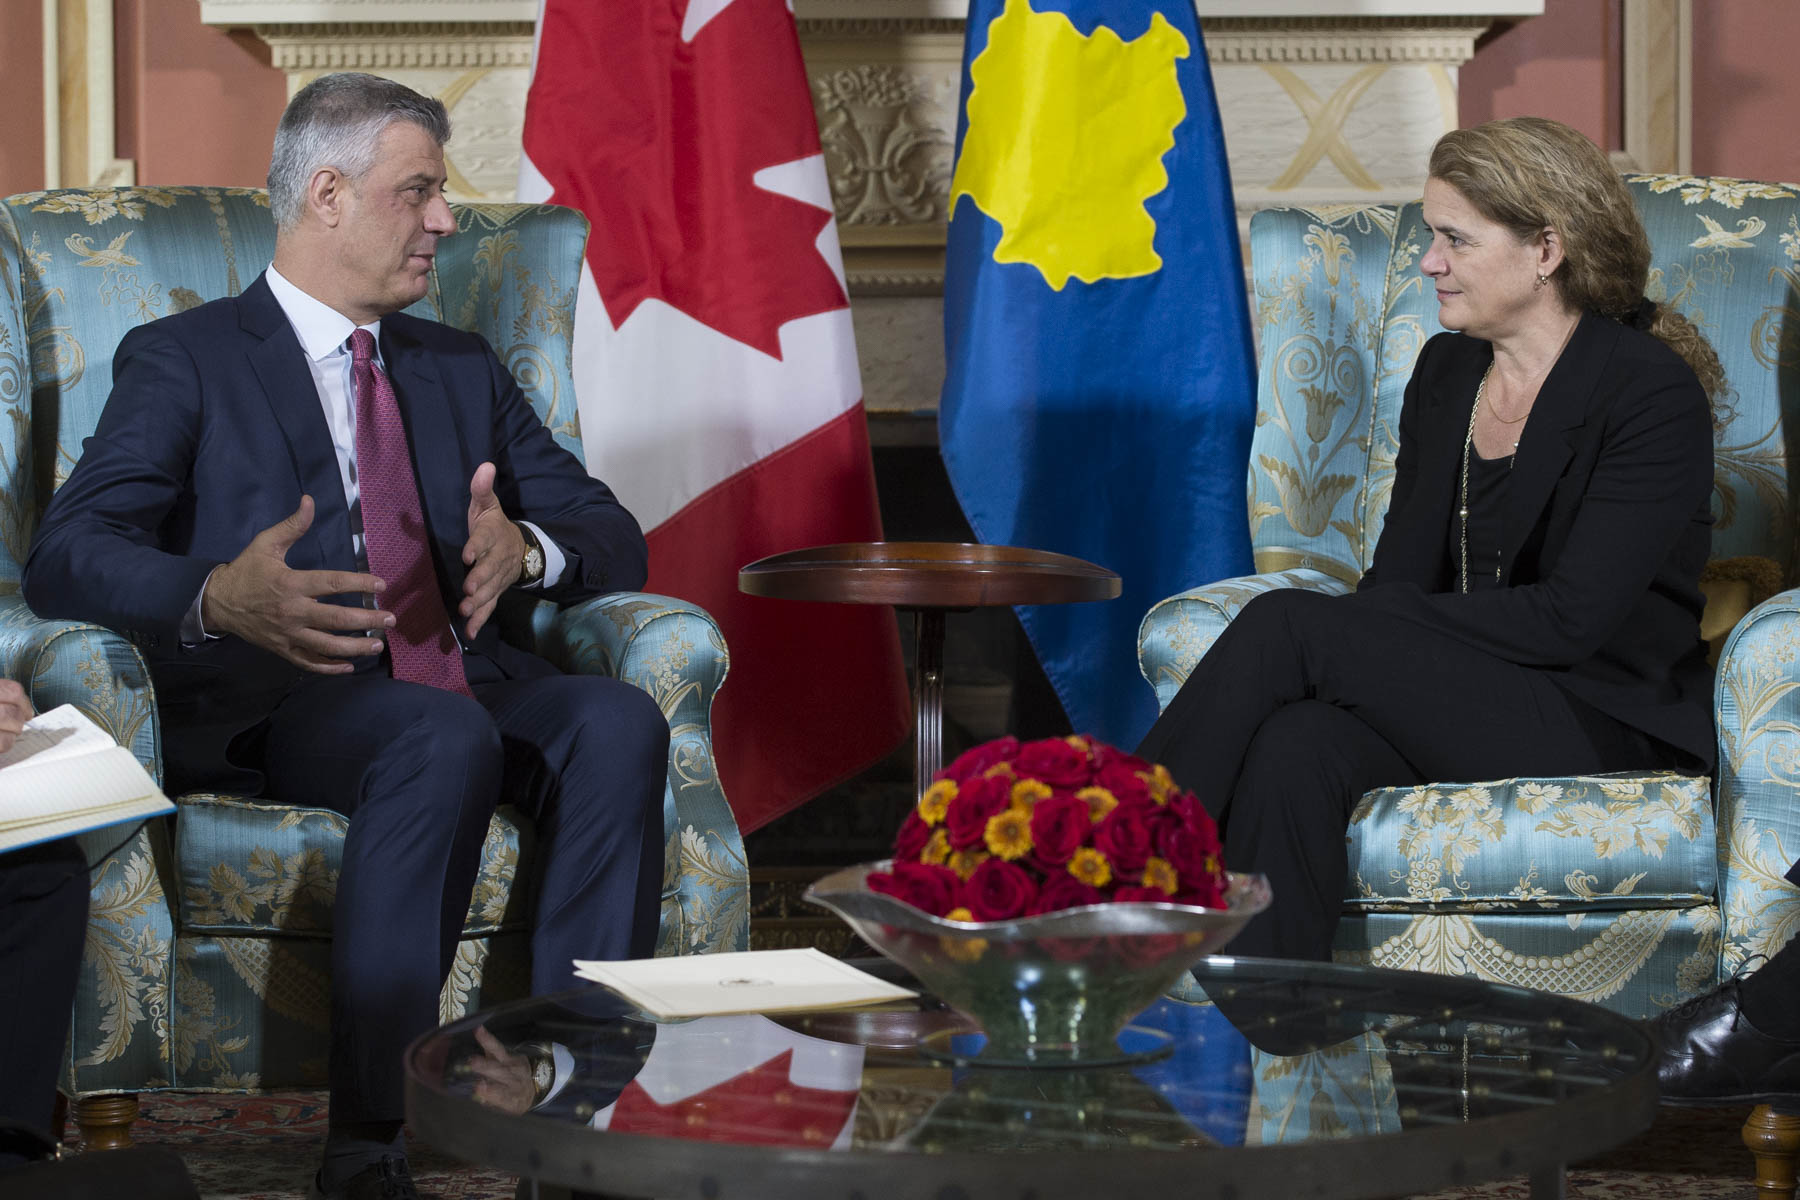 Bilateral relations between Canada and Kosovo are good, and show potential for continued development.